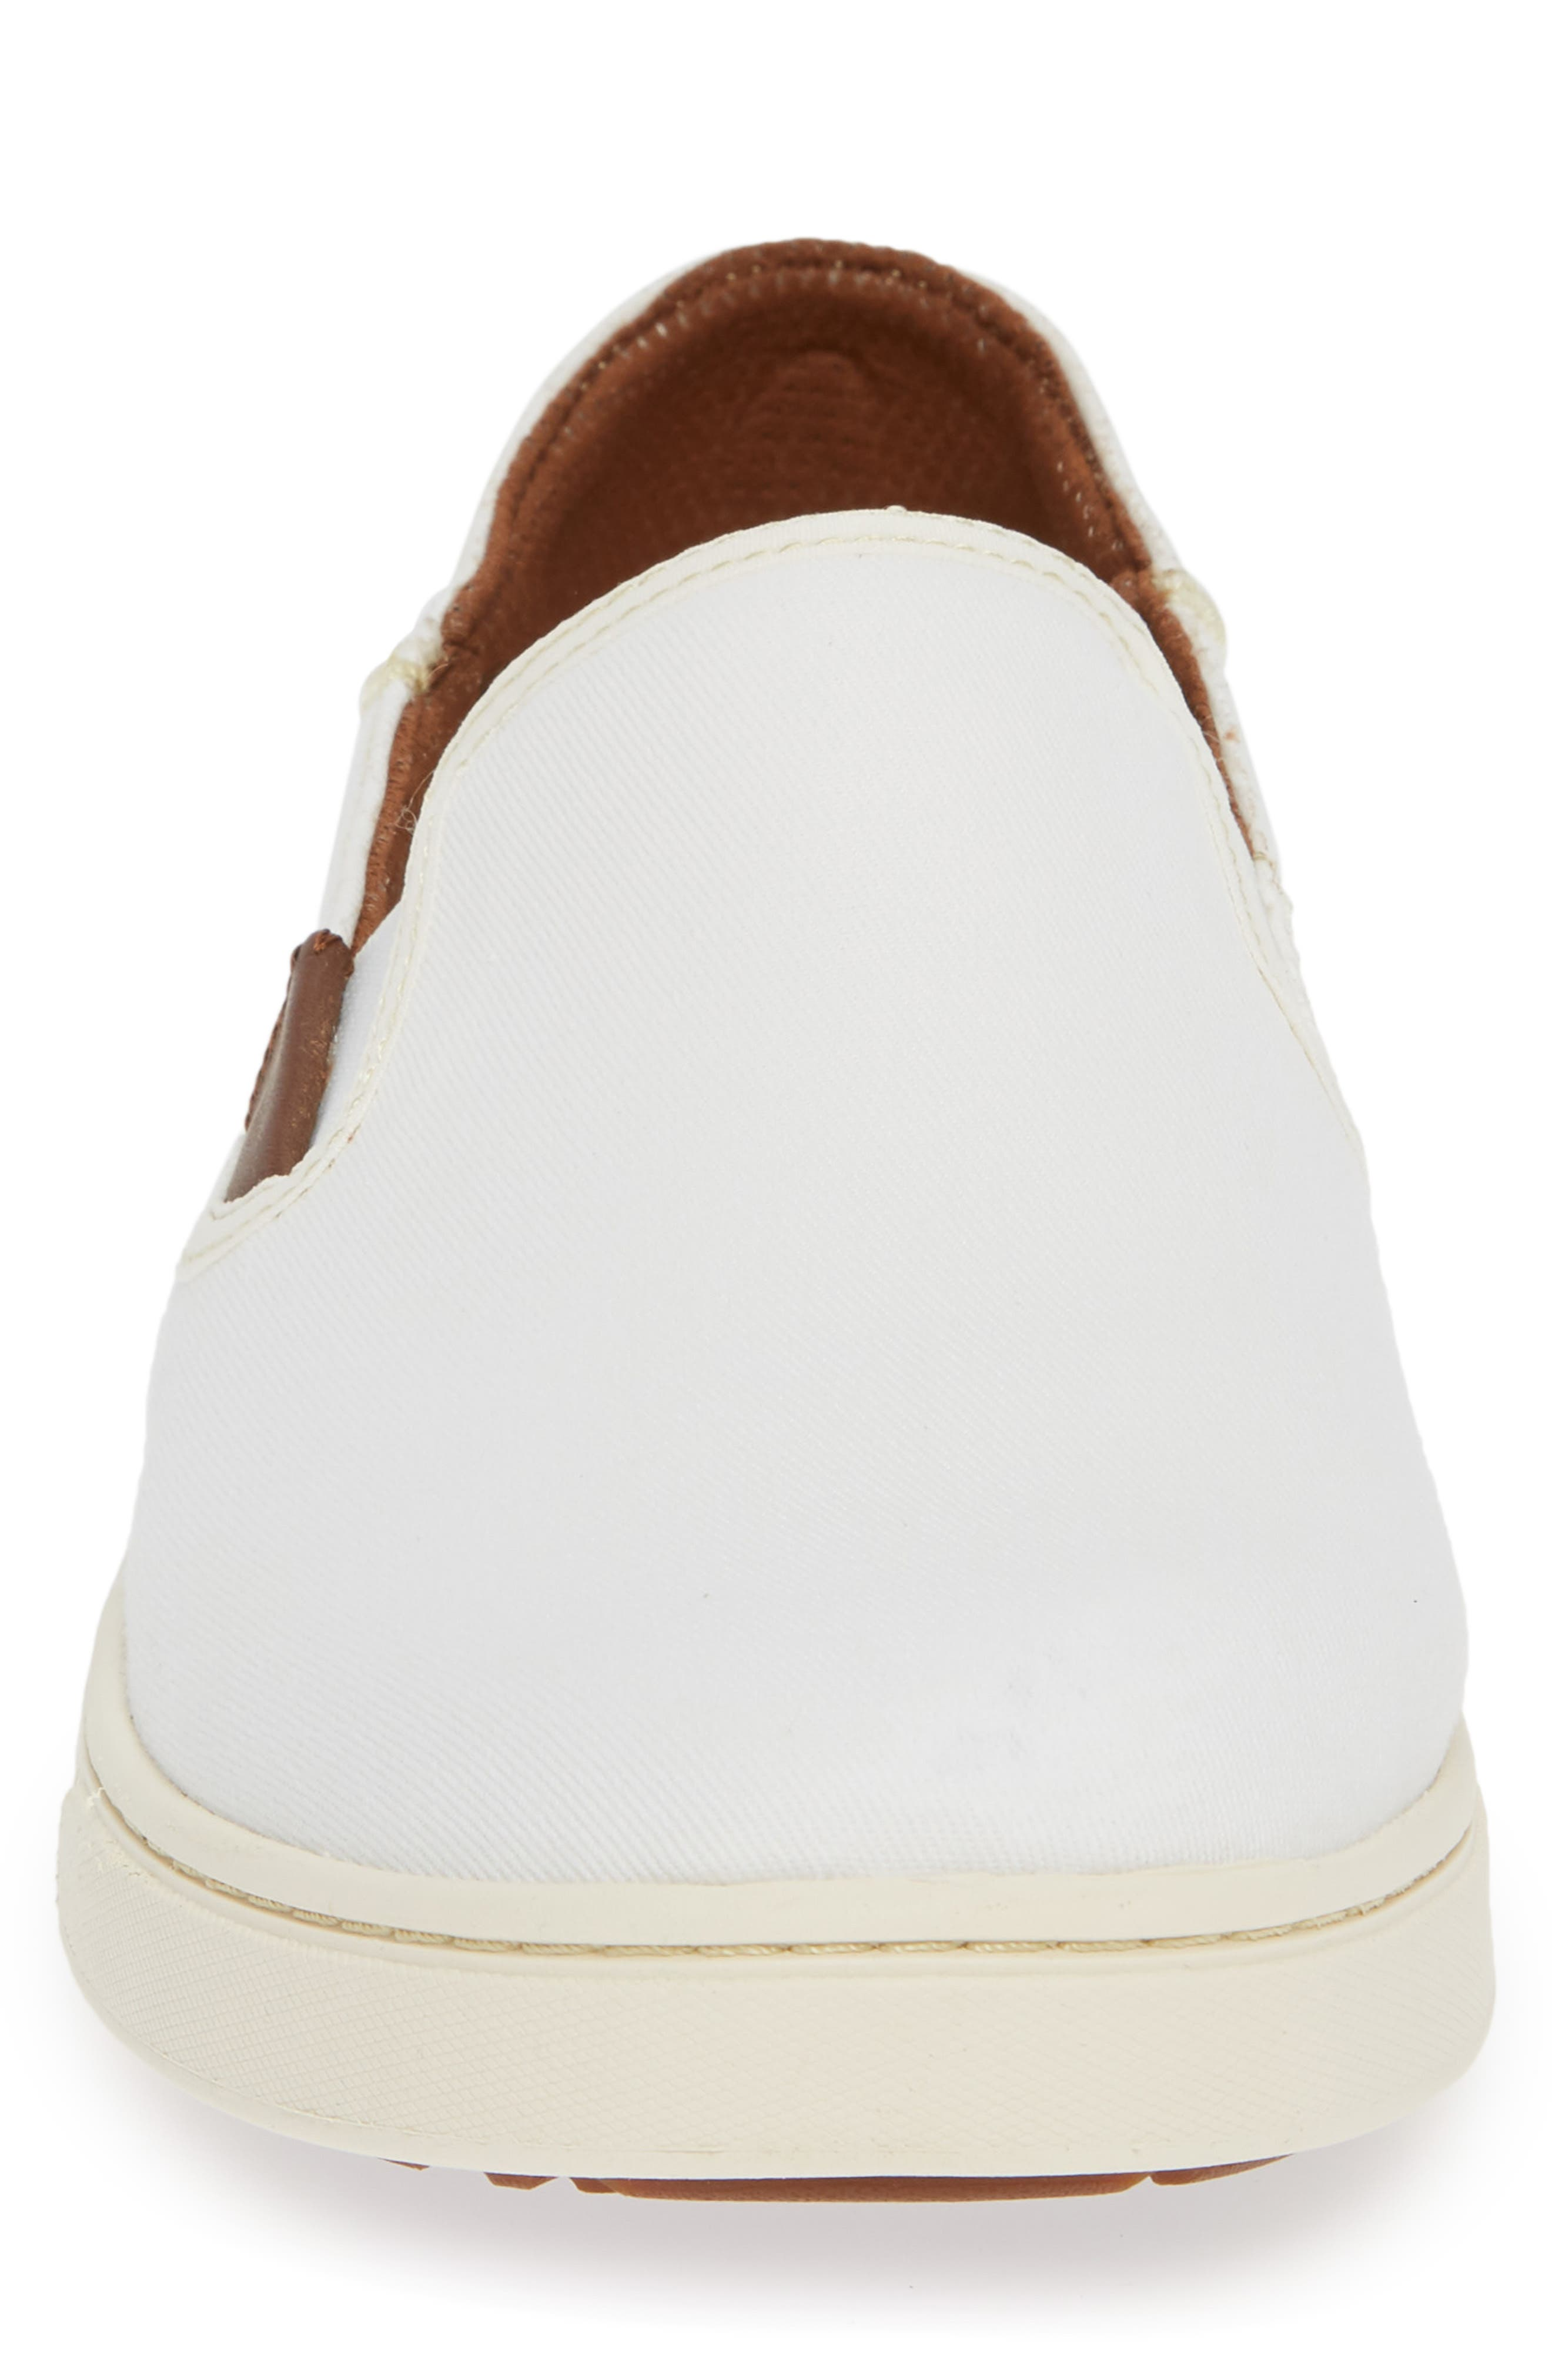 Kahu Collapsible Slip-On Sneaker,                             Alternate thumbnail 4, color,                             OFF WHITE/ OFF WHITE TEXTILE